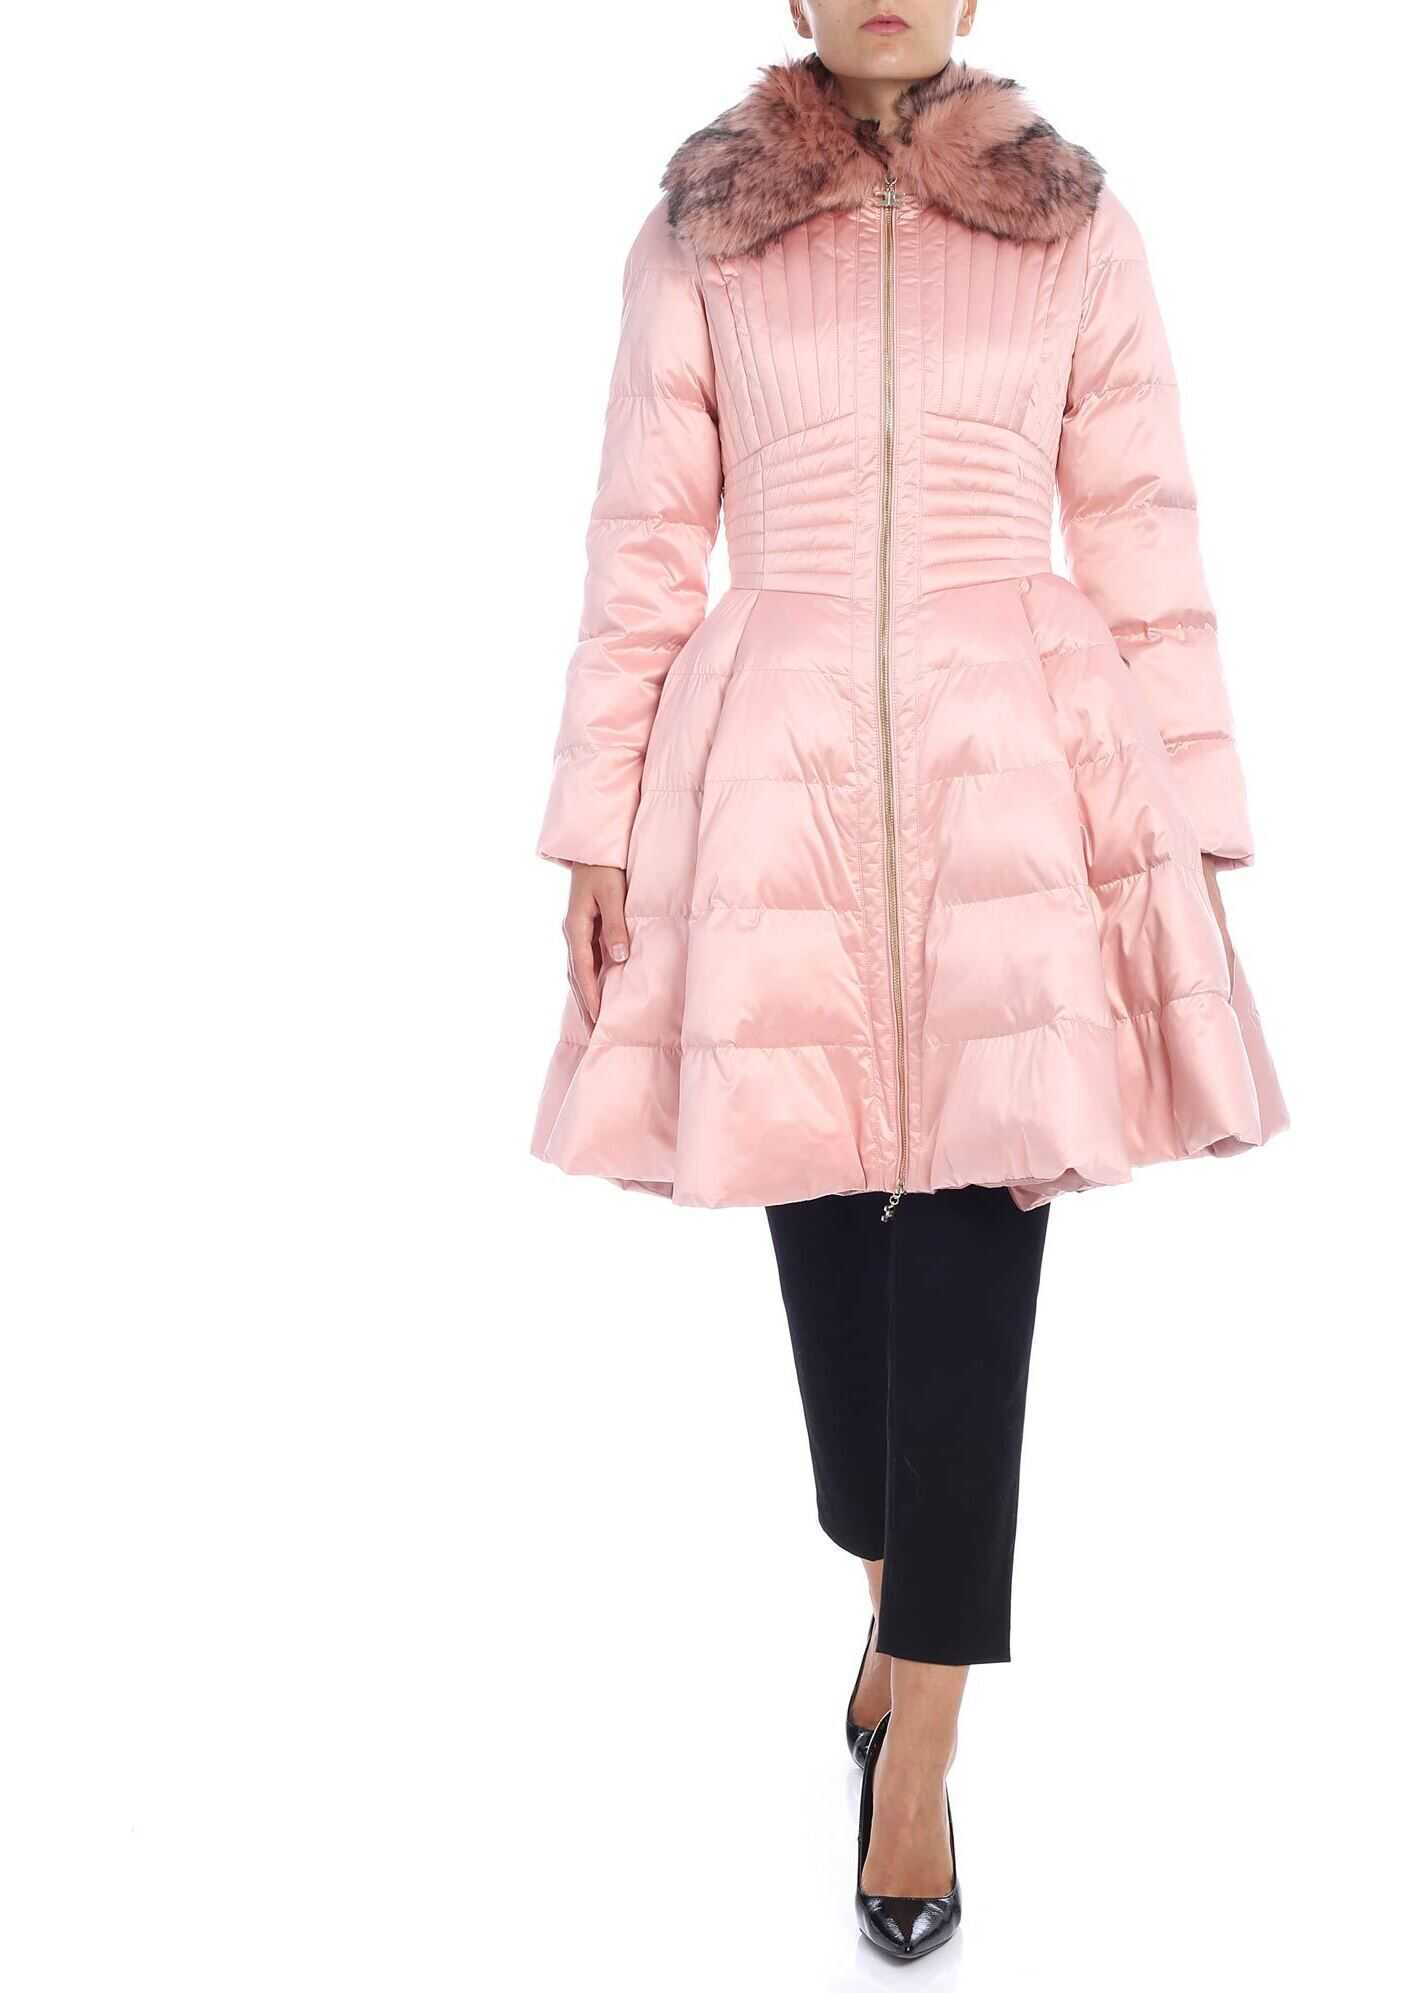 Elisabetta Franchi Pink Flared Down Jacket With Eco-Fur Insert Pink